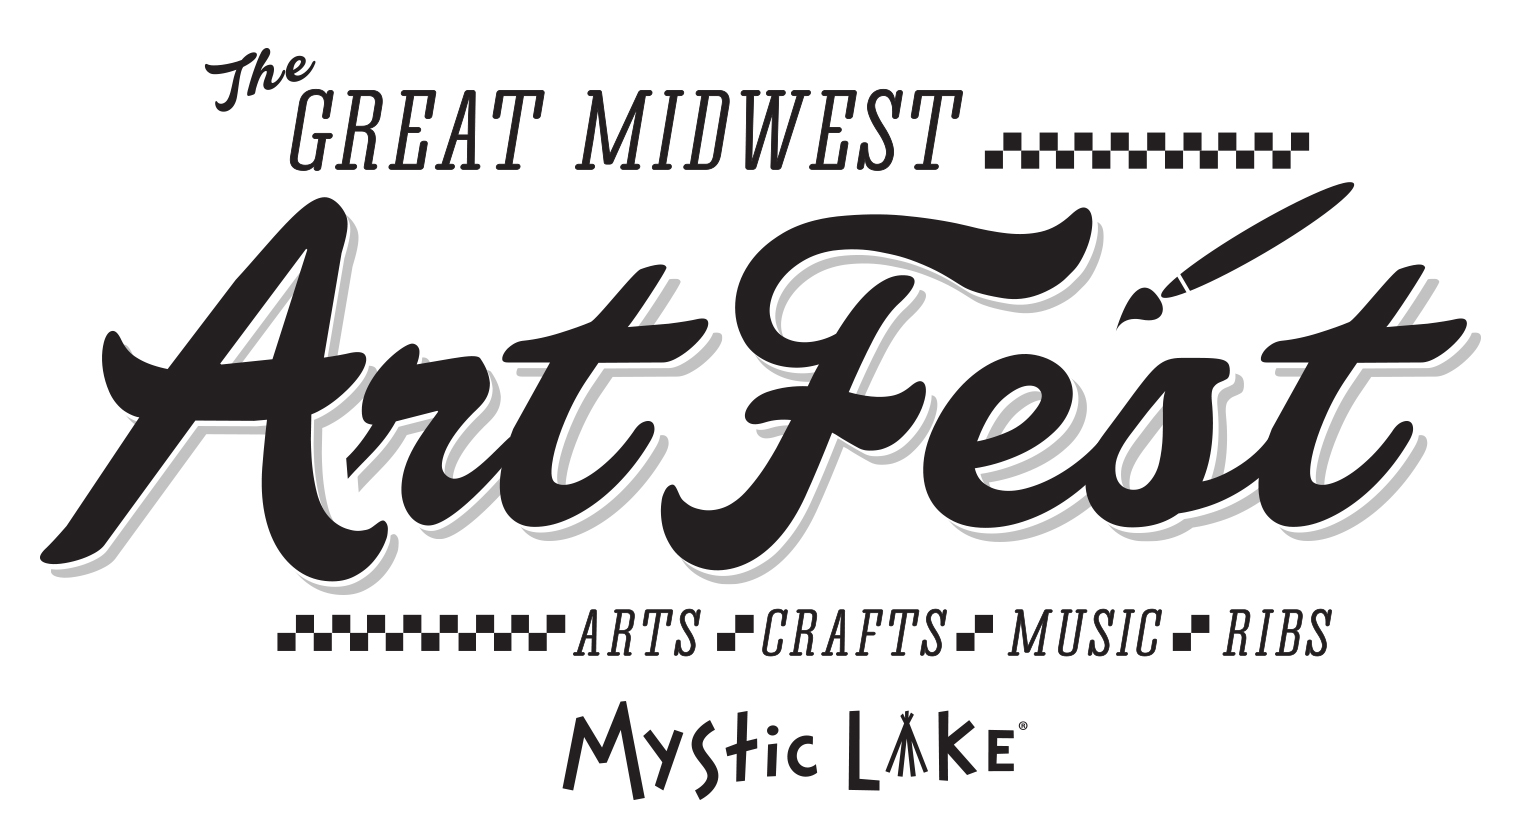 midwest art fest, mystic lake casino arts and crafts fest